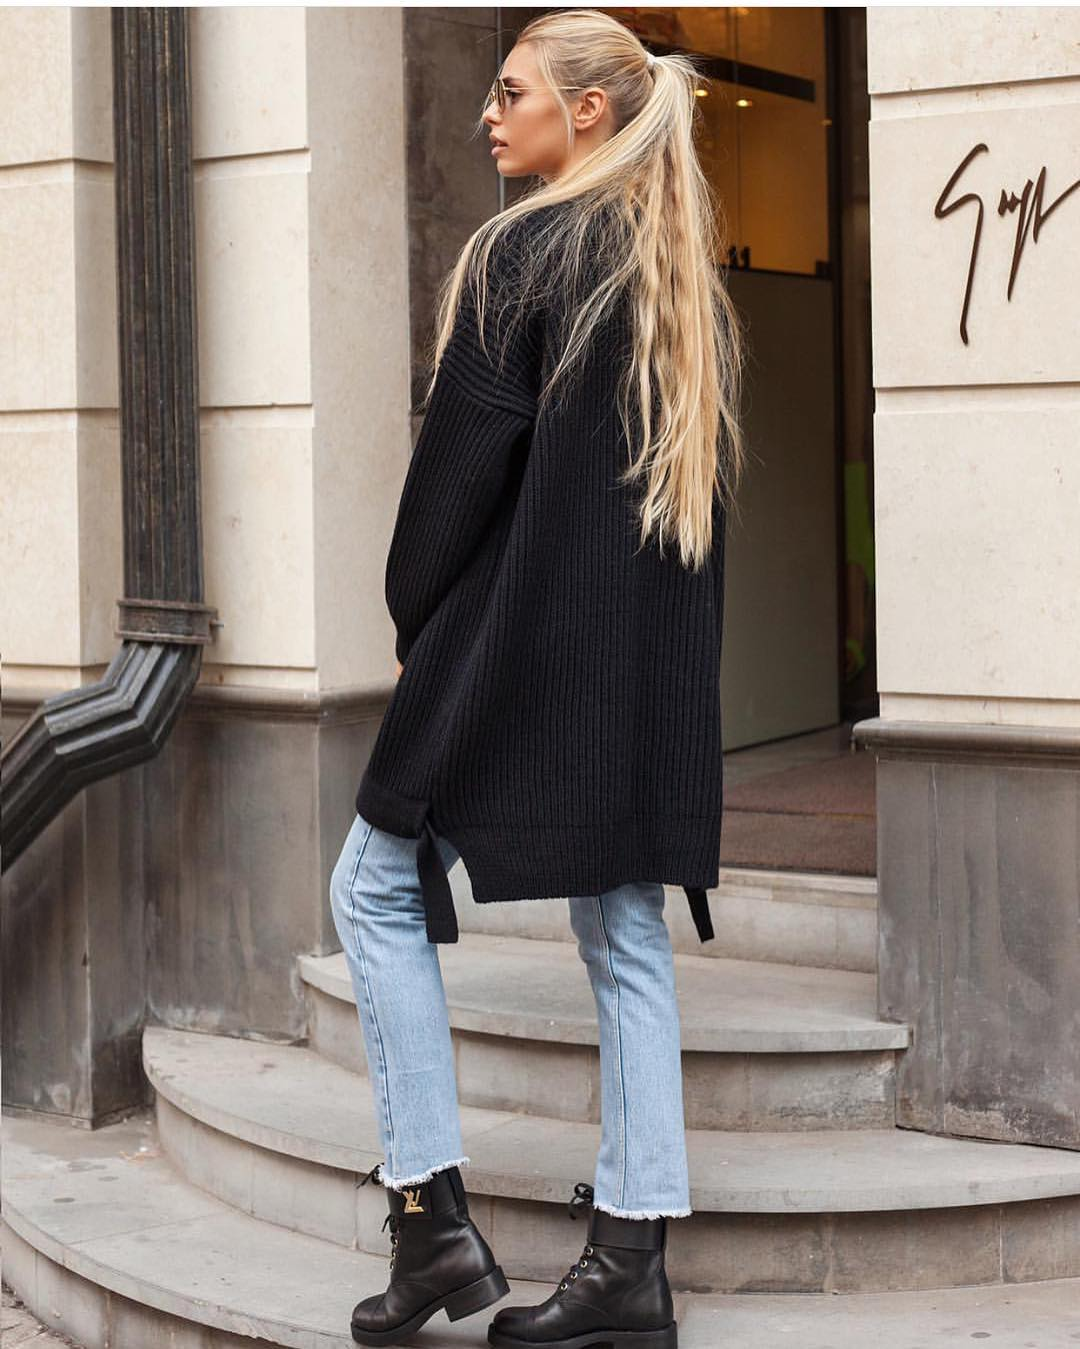 Modern Grunge For Fall: Oversized Sweater, Regular Jeans And Combat Boots 2019